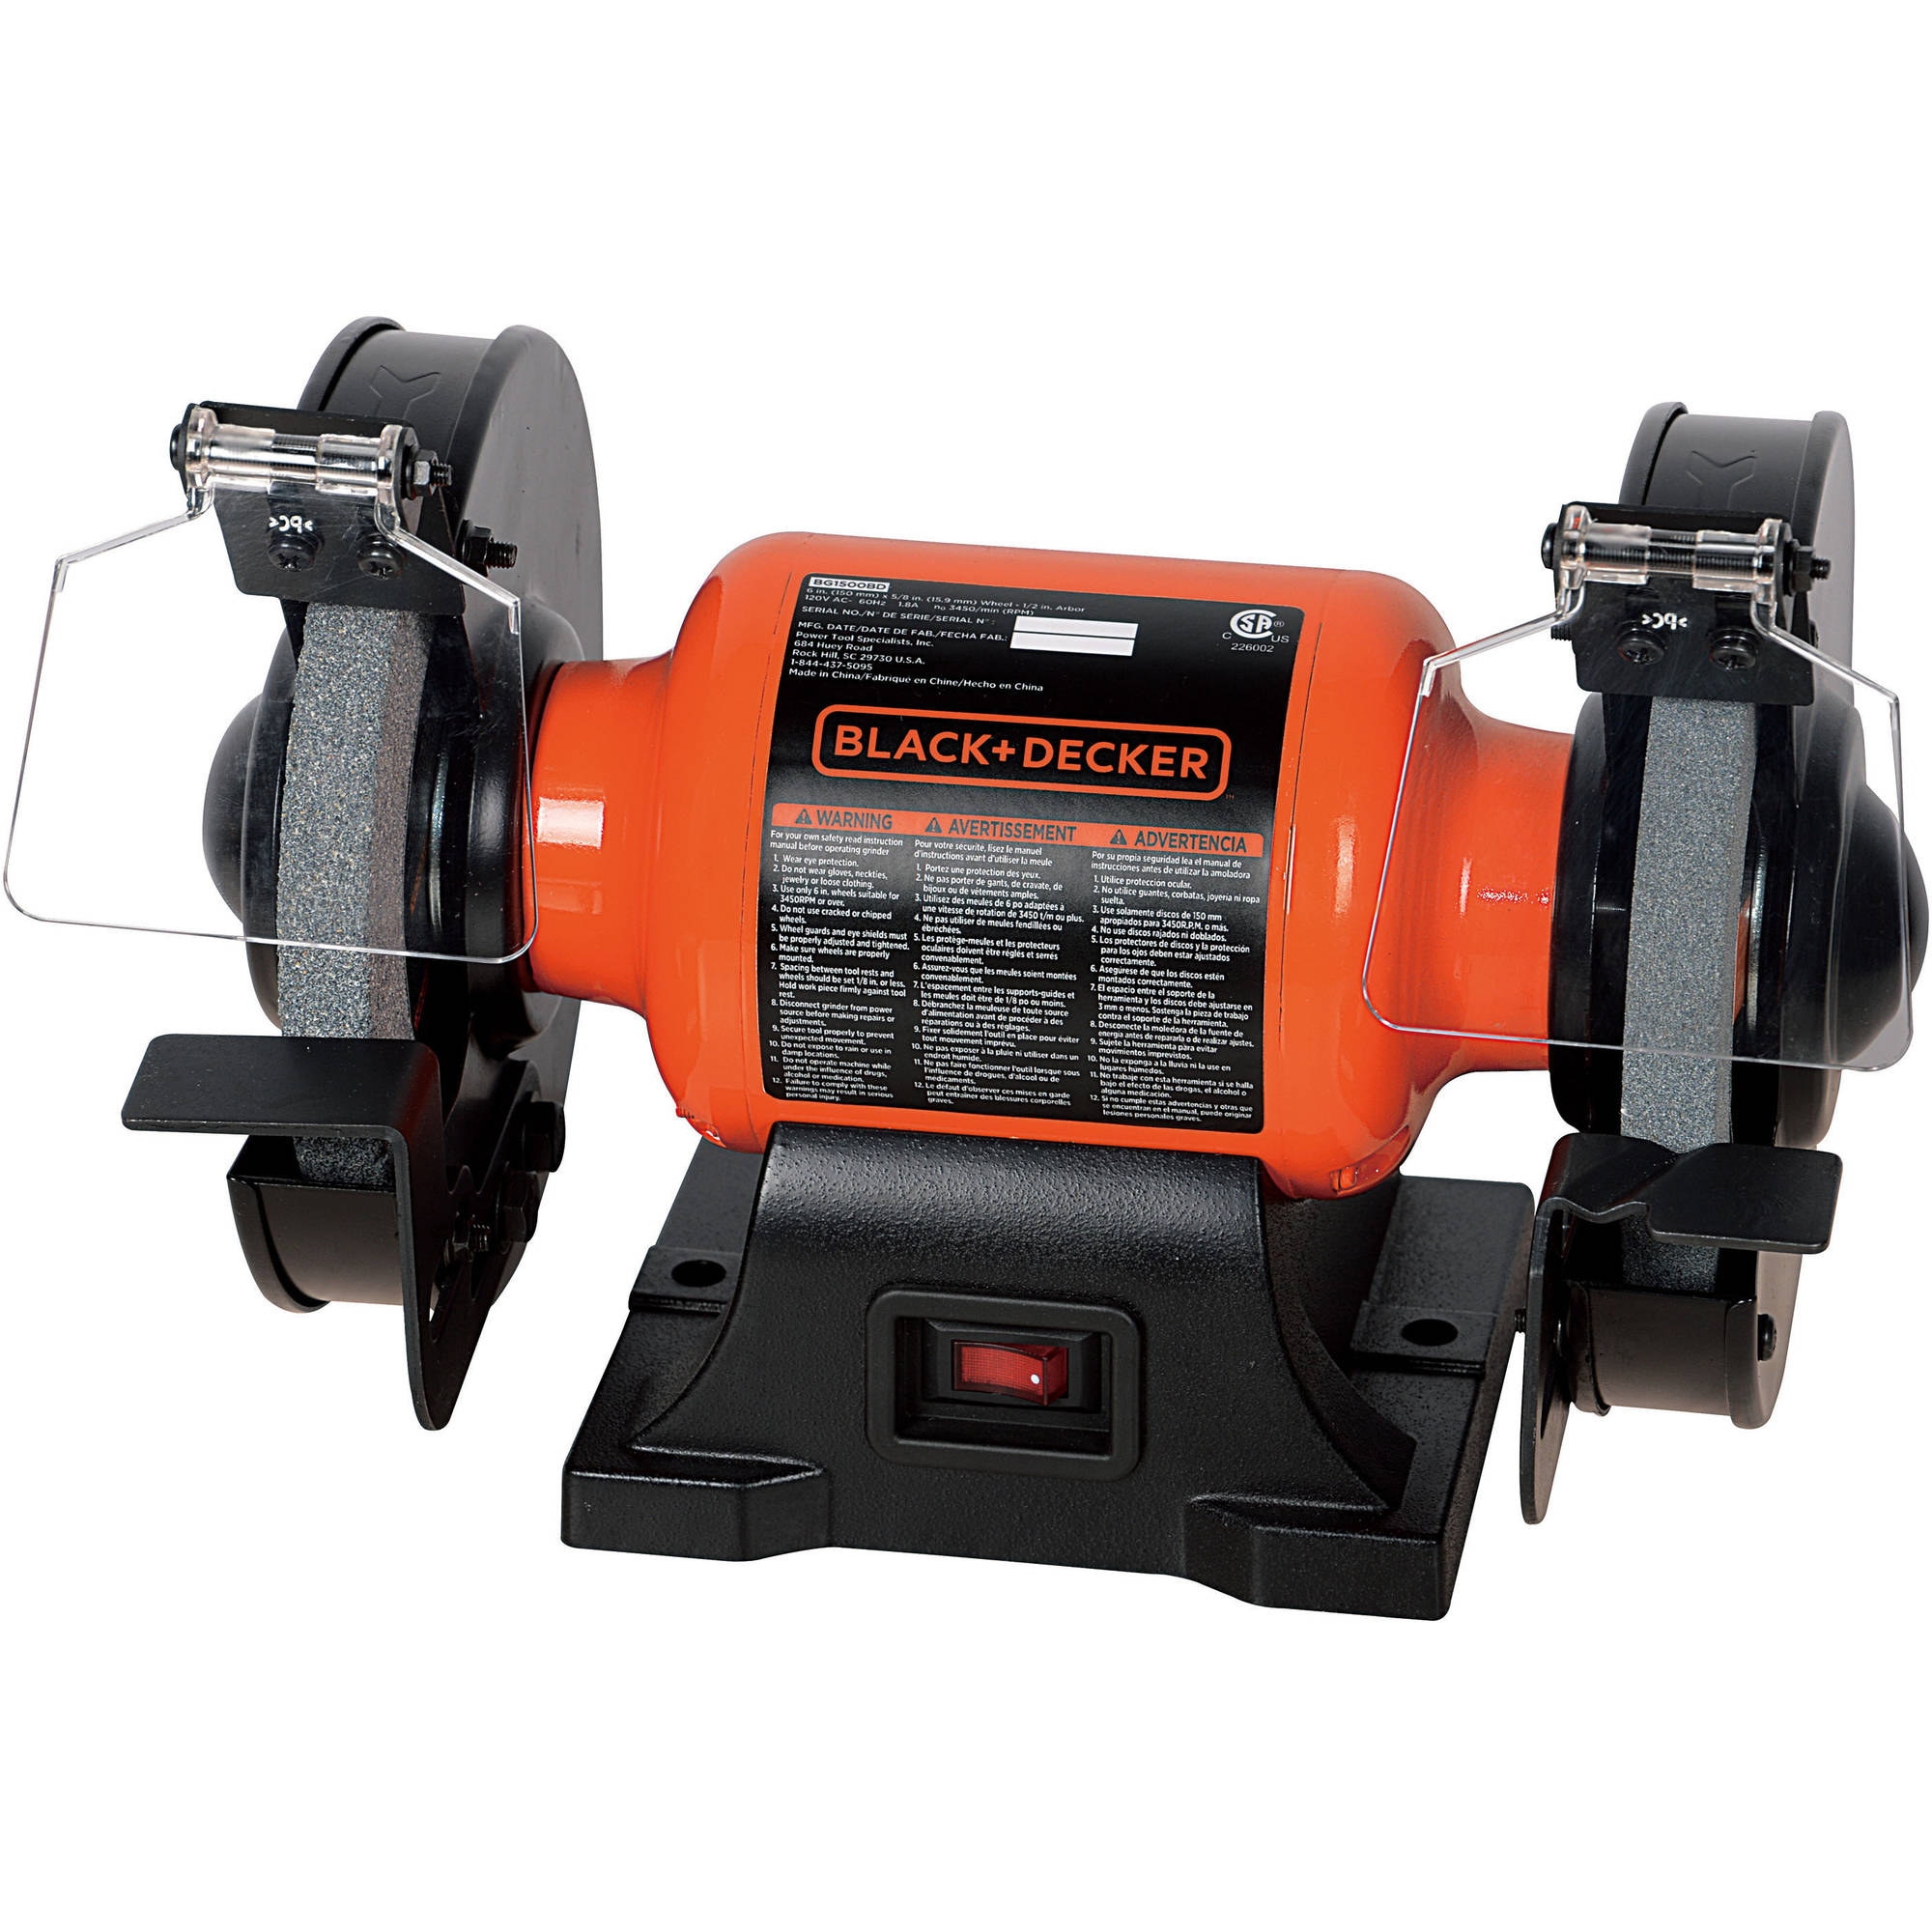 black single women in decker The black & decker dustbuster  lantern, grass shear, drill, and spot vac), all powered by a single,  and as of 2016 black and decker still used the name in its.